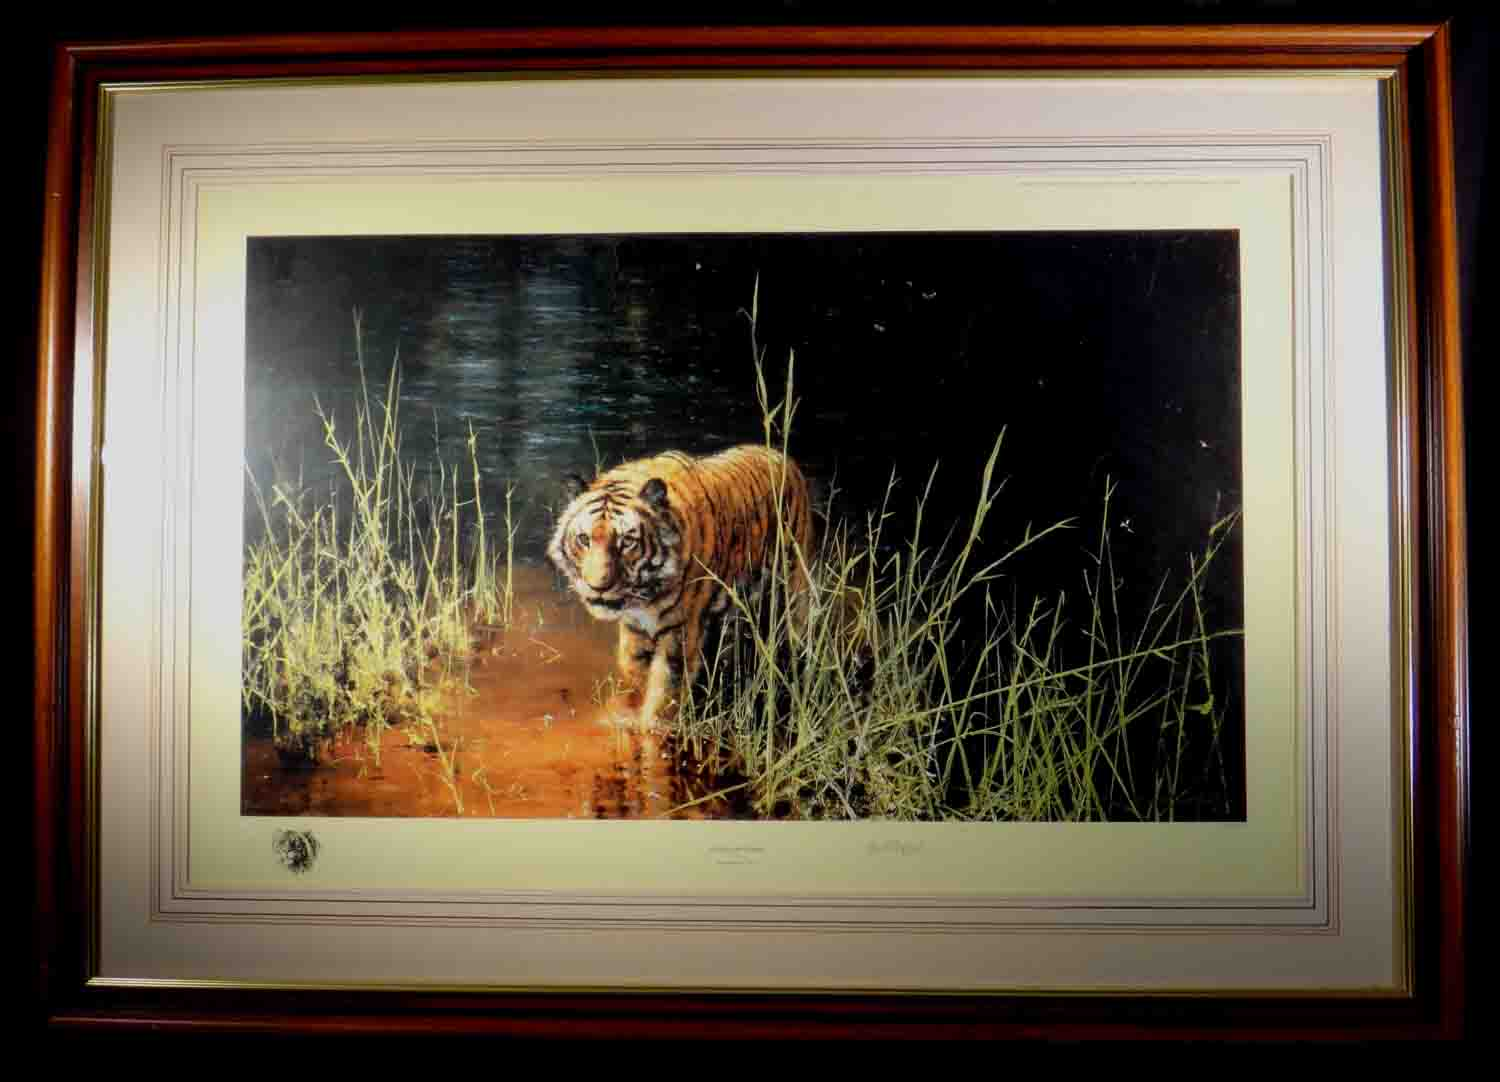 david shepherd, jungle gentleman, tiger, signed limited edition print